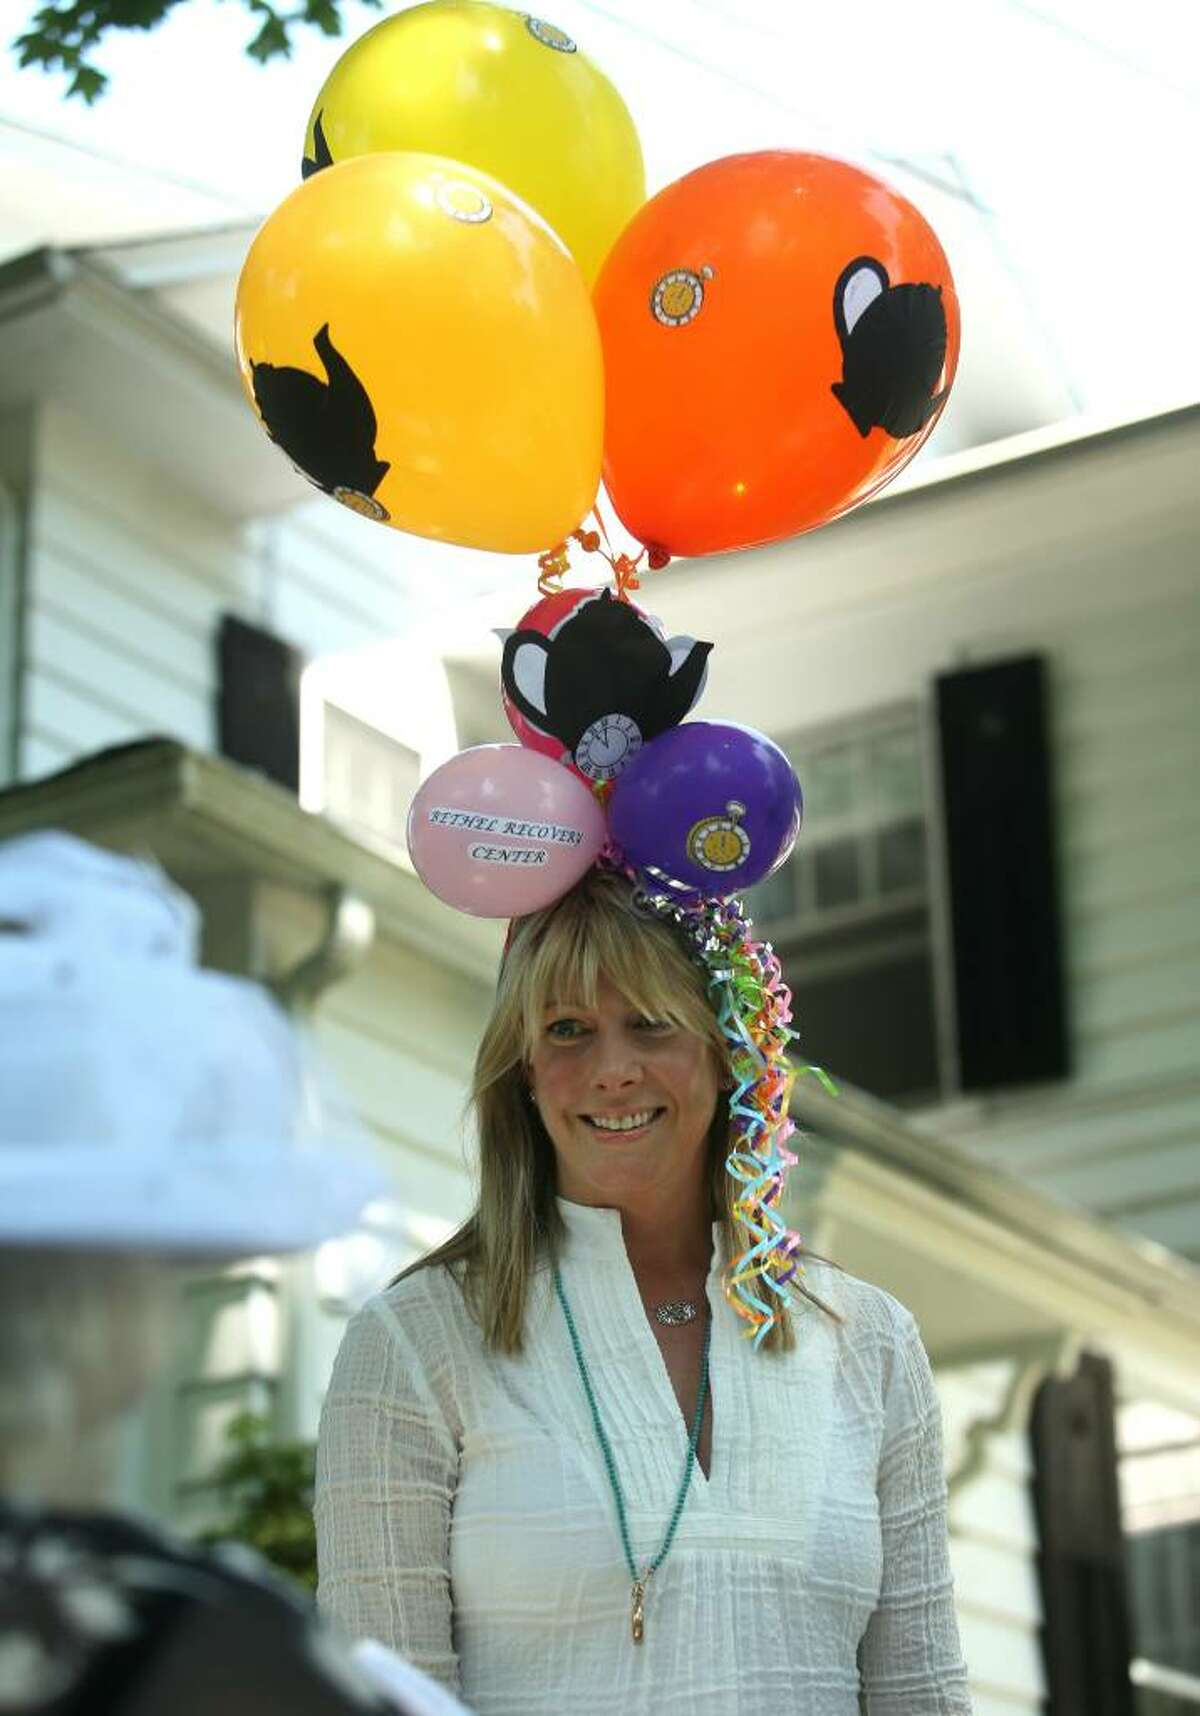 Kelley Schutte fashioned a creative balloon hat for the eighth annual Mad Hatter's Tea Party fundraiser for the Bethel Recovery Center on Tuesday, May 25, 2010.